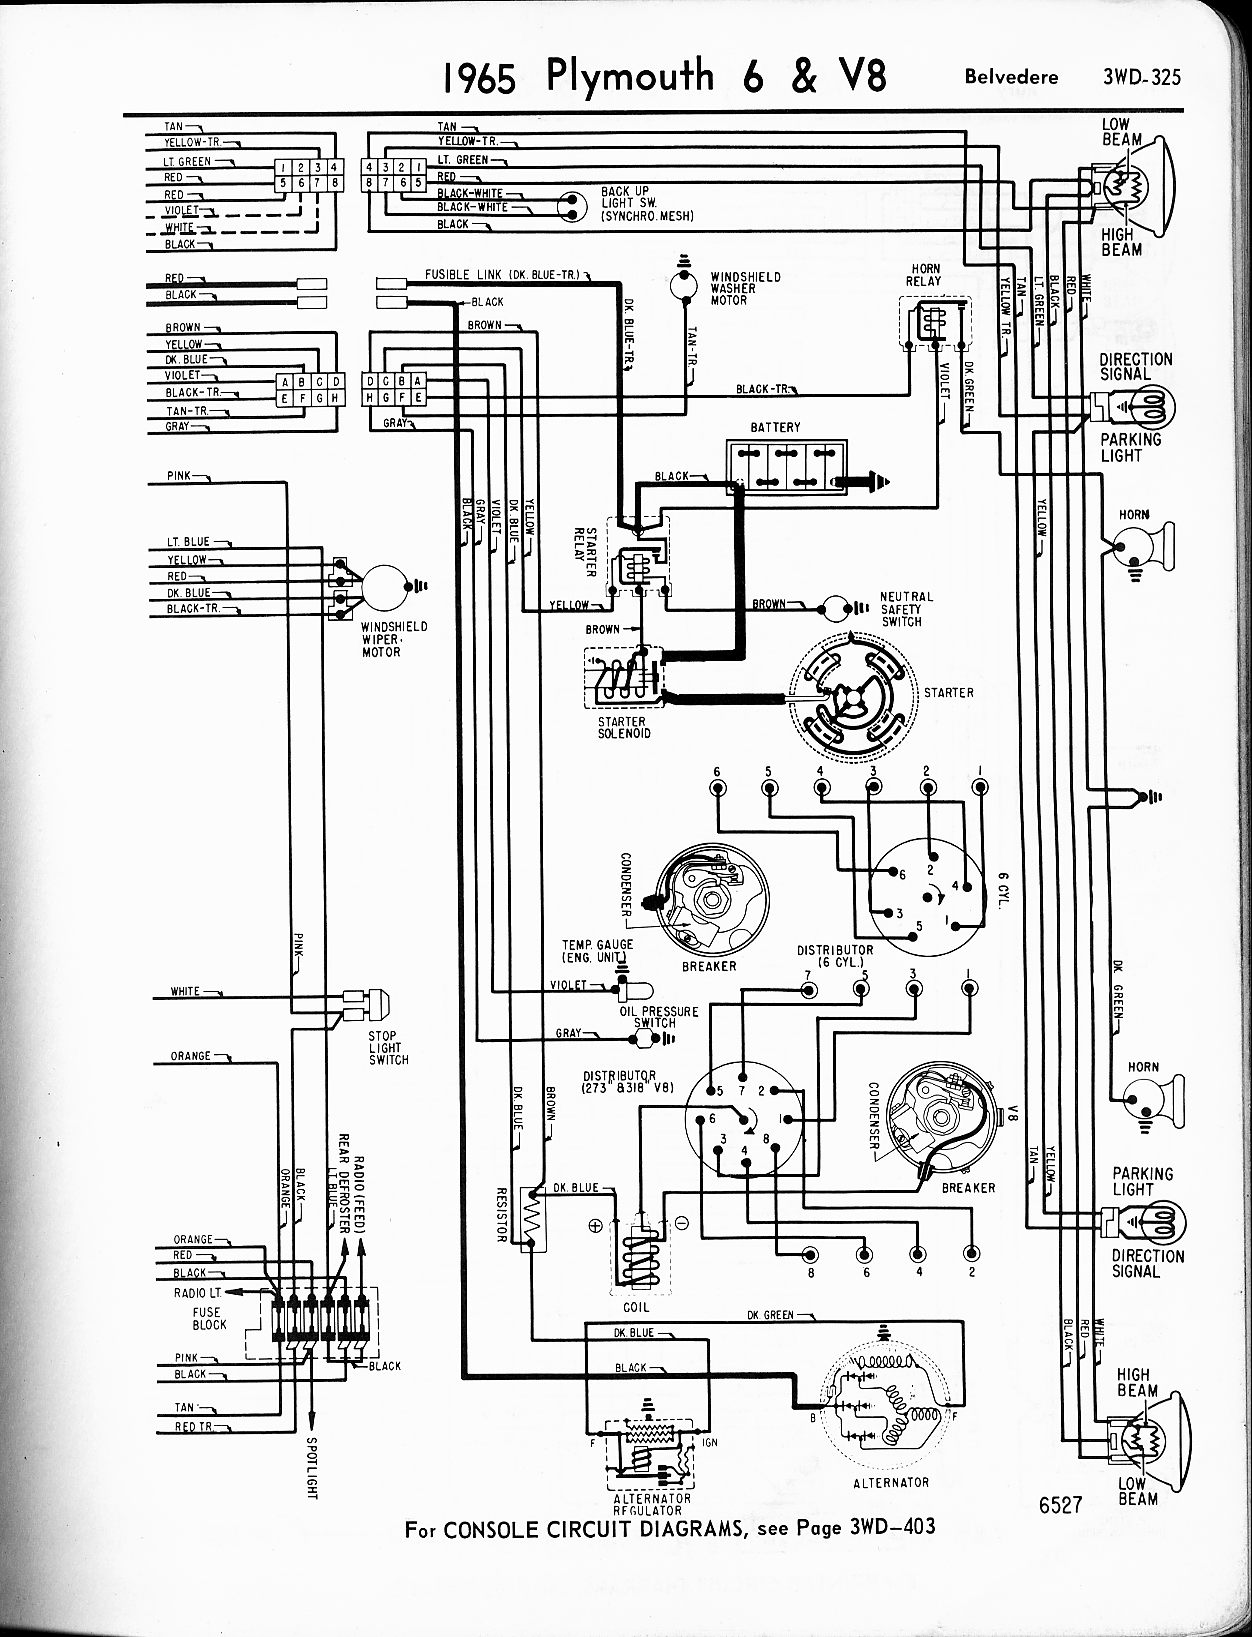 1956 vw wiring diagram wiring diagram 1981 Corvette Fuse Box Diagram 67 plymouth barracuda wiring diagram wiring library1965 plymouth satellite wiring diagram schematics wiring diagrams u2022 rh